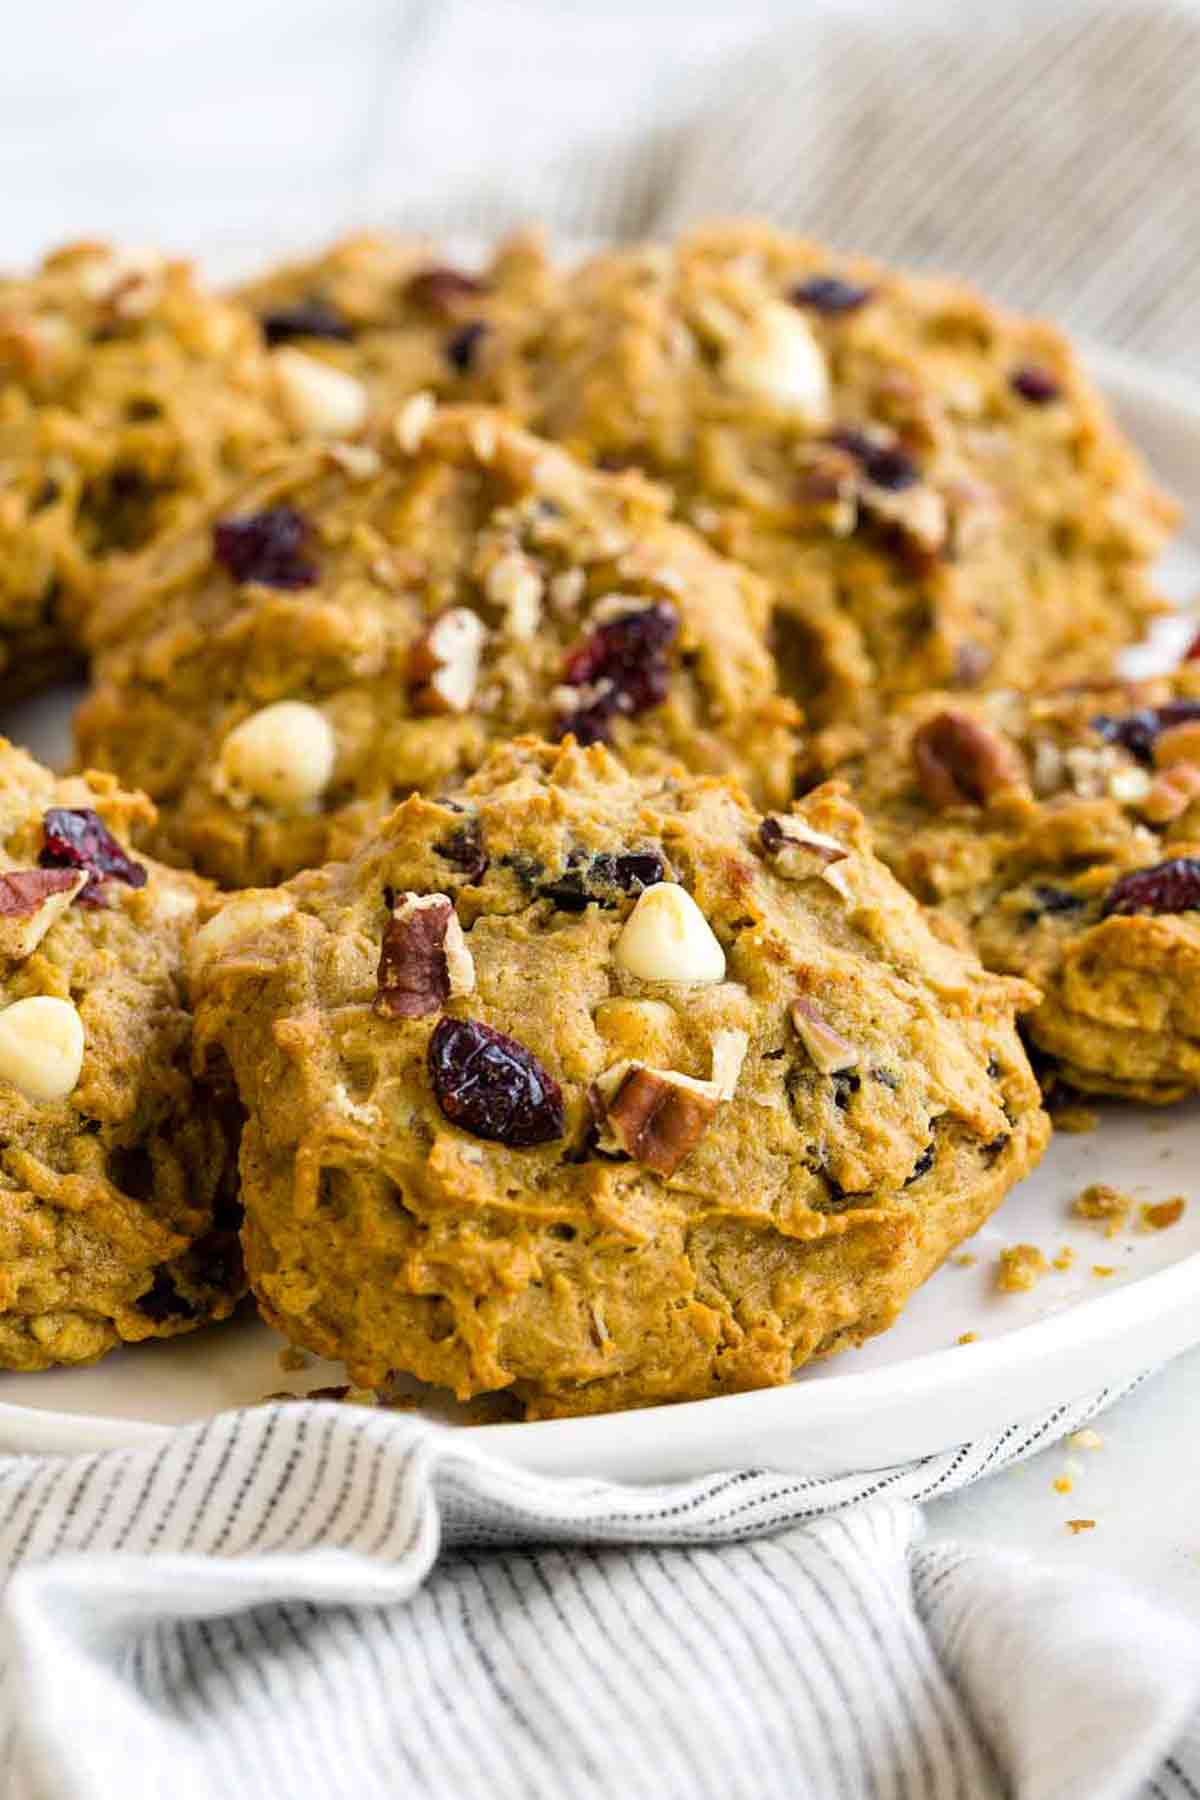 A sweet and spiced persimmon cookies recipe with cranberries, white chocolate chips, and pecans. A perfect soft and moist treat to make during the holidays!